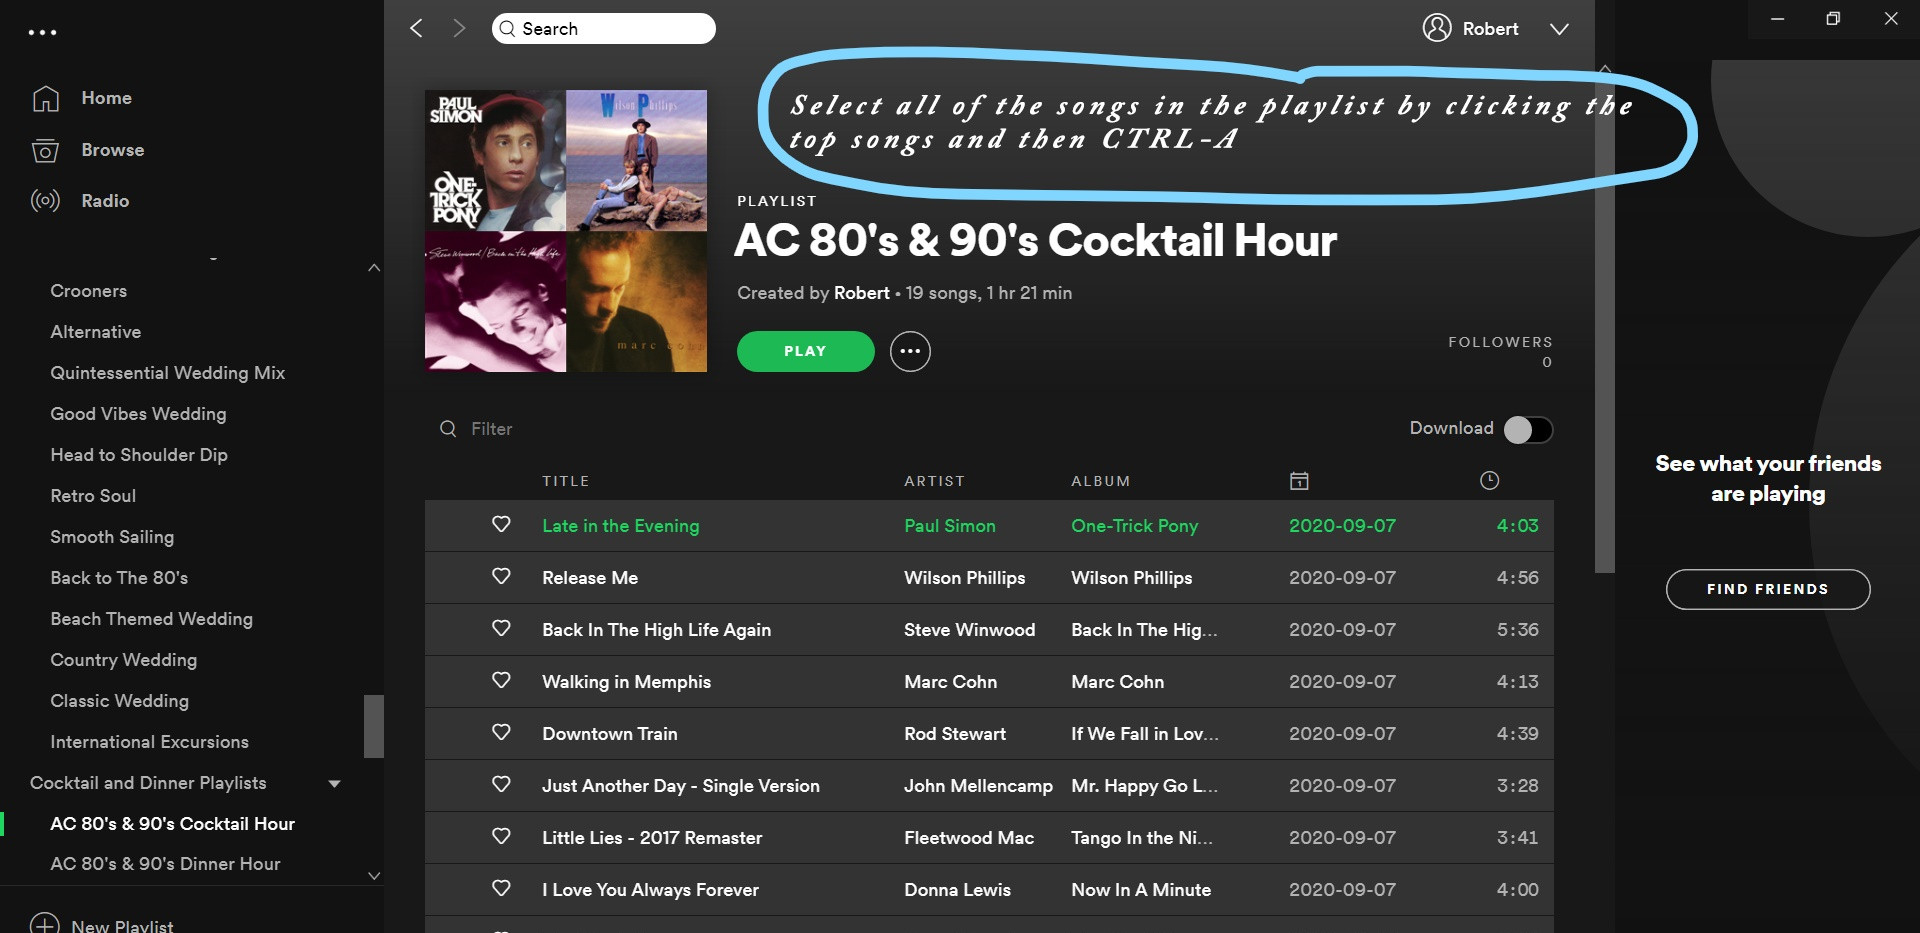 Spotify Desktop App Selecting all song from the Playlist